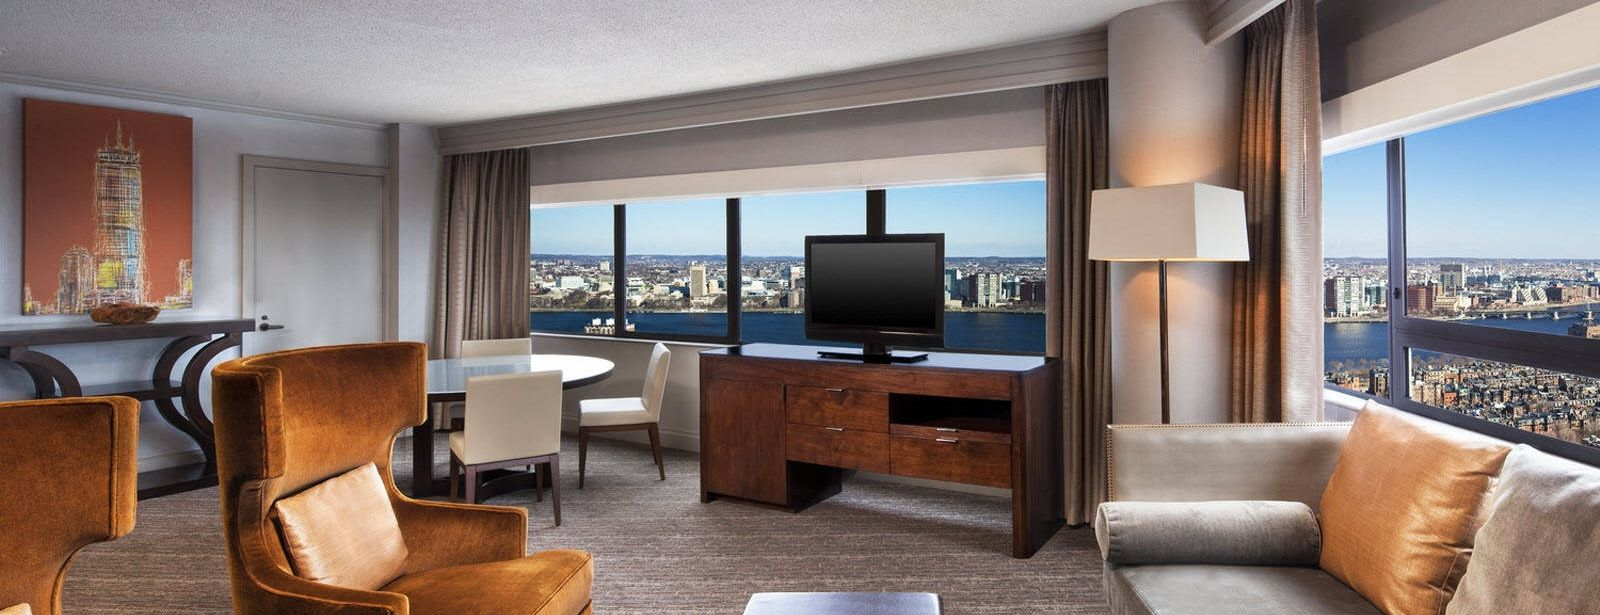 The Westin Copley Place Boston deluxe one bedroom suite